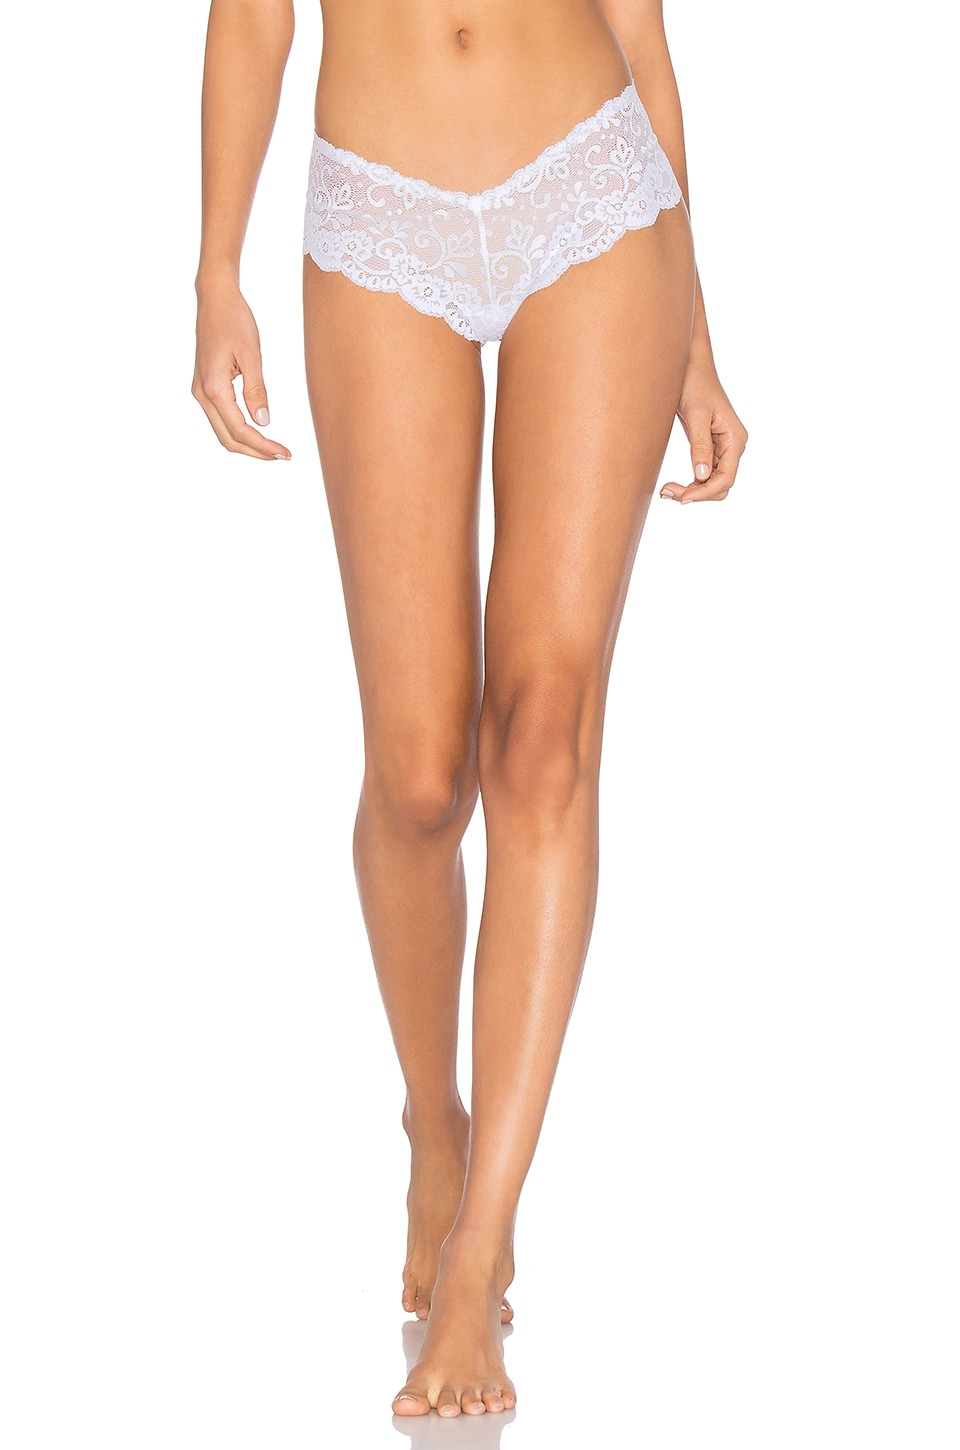 Les Coquines Evi Lace Cheeky in Blanc